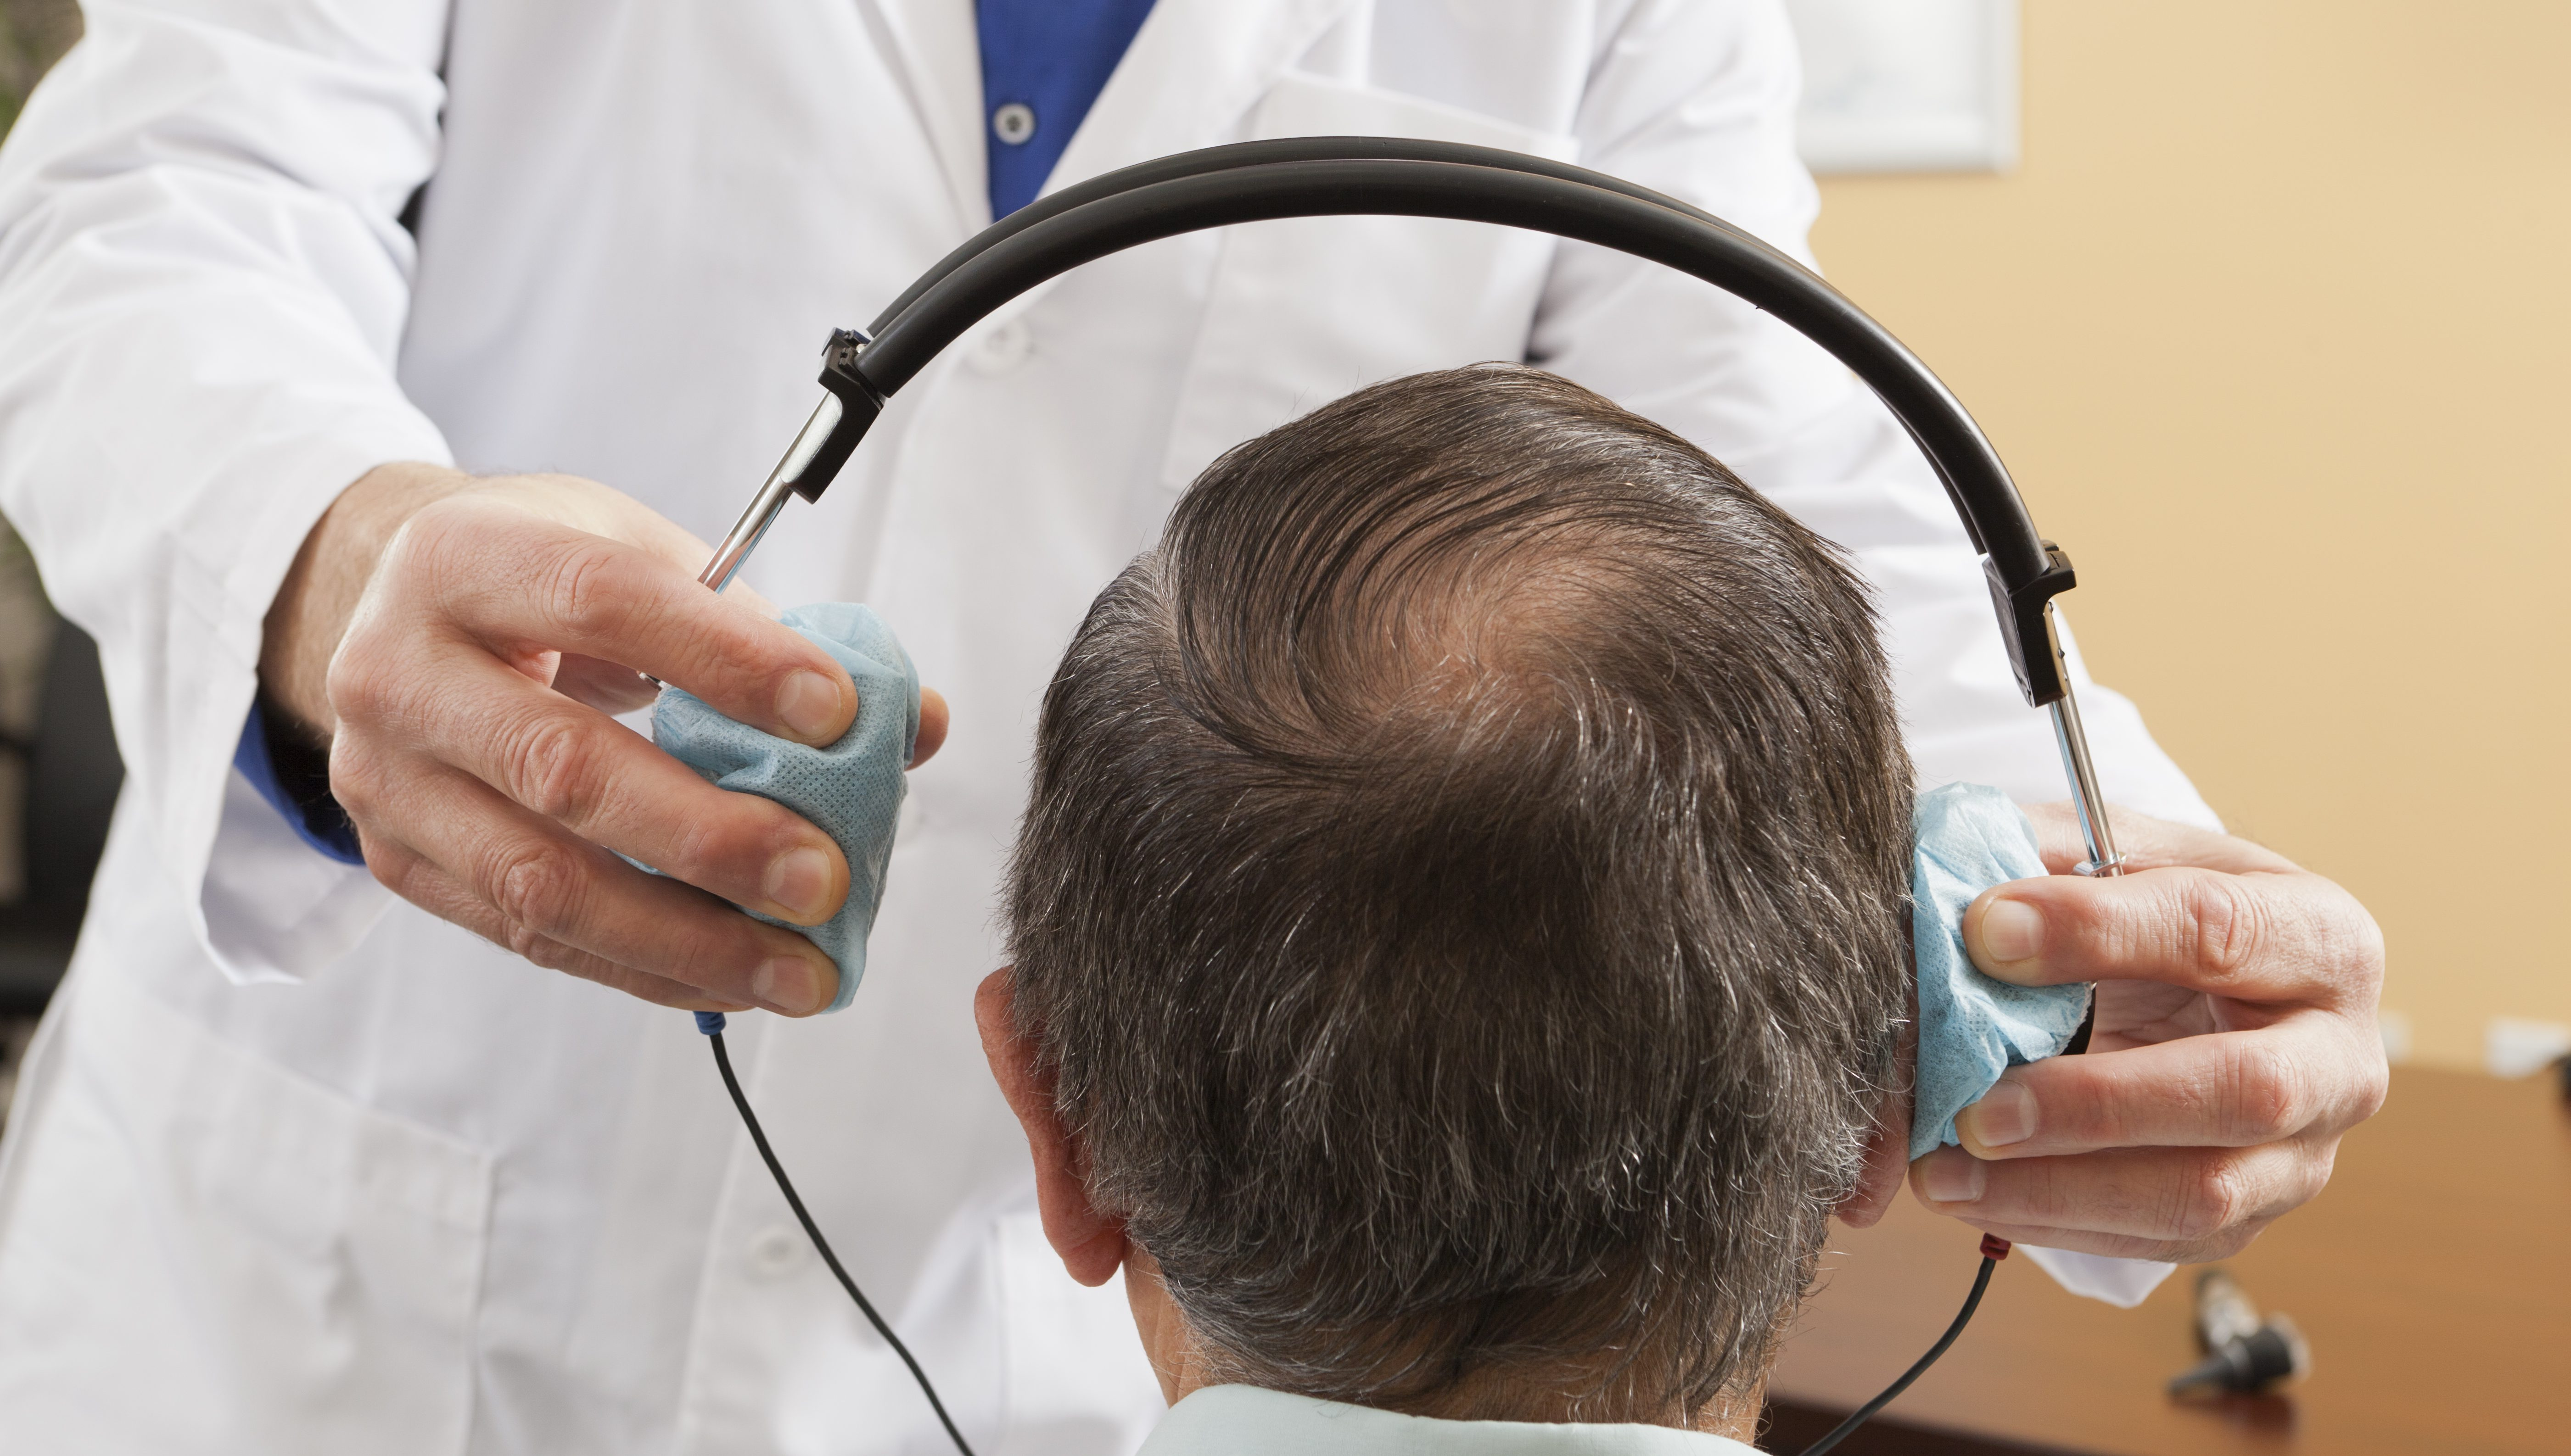 Audiologist placing a headset on a patient for audiometric evaluation